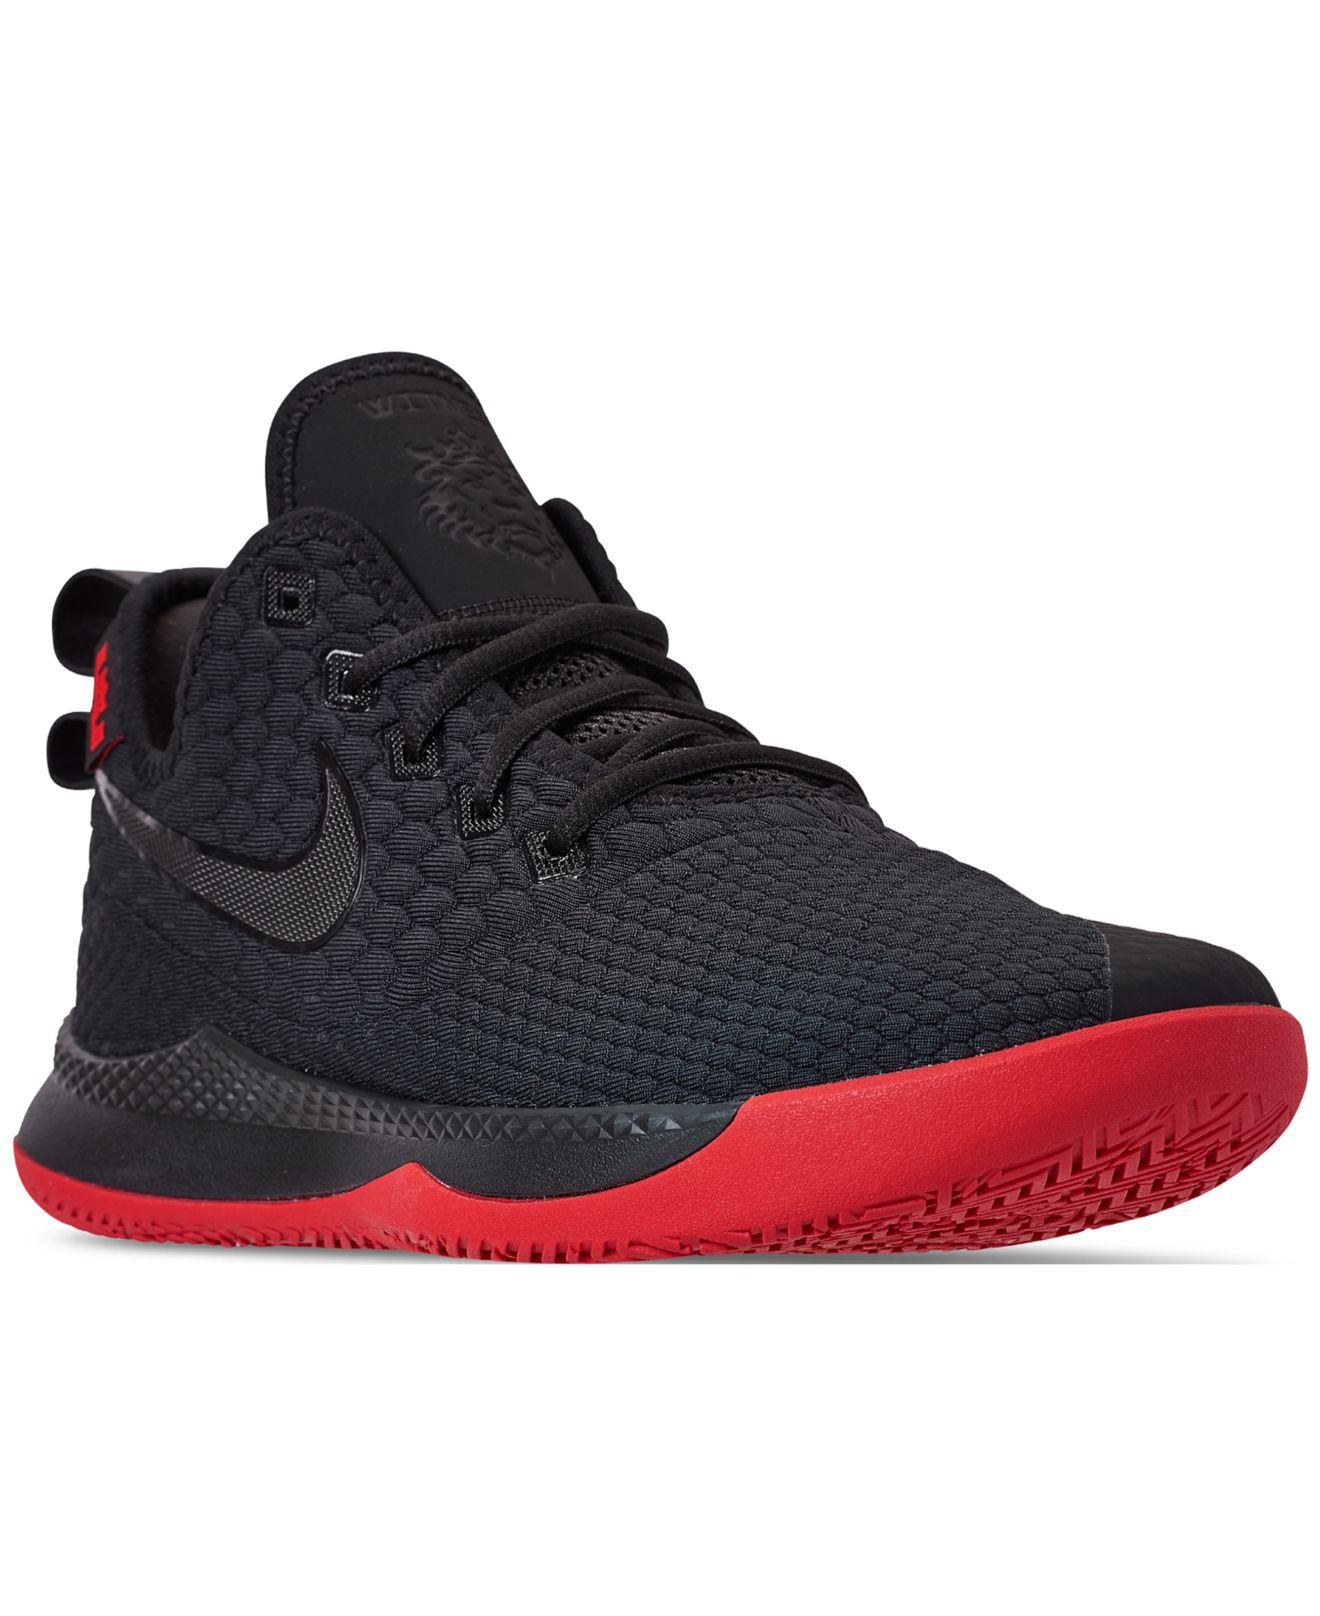 367208c581c9 Lyst - Nike Lebron Witness Iii Basketball Shoes in Black for Men